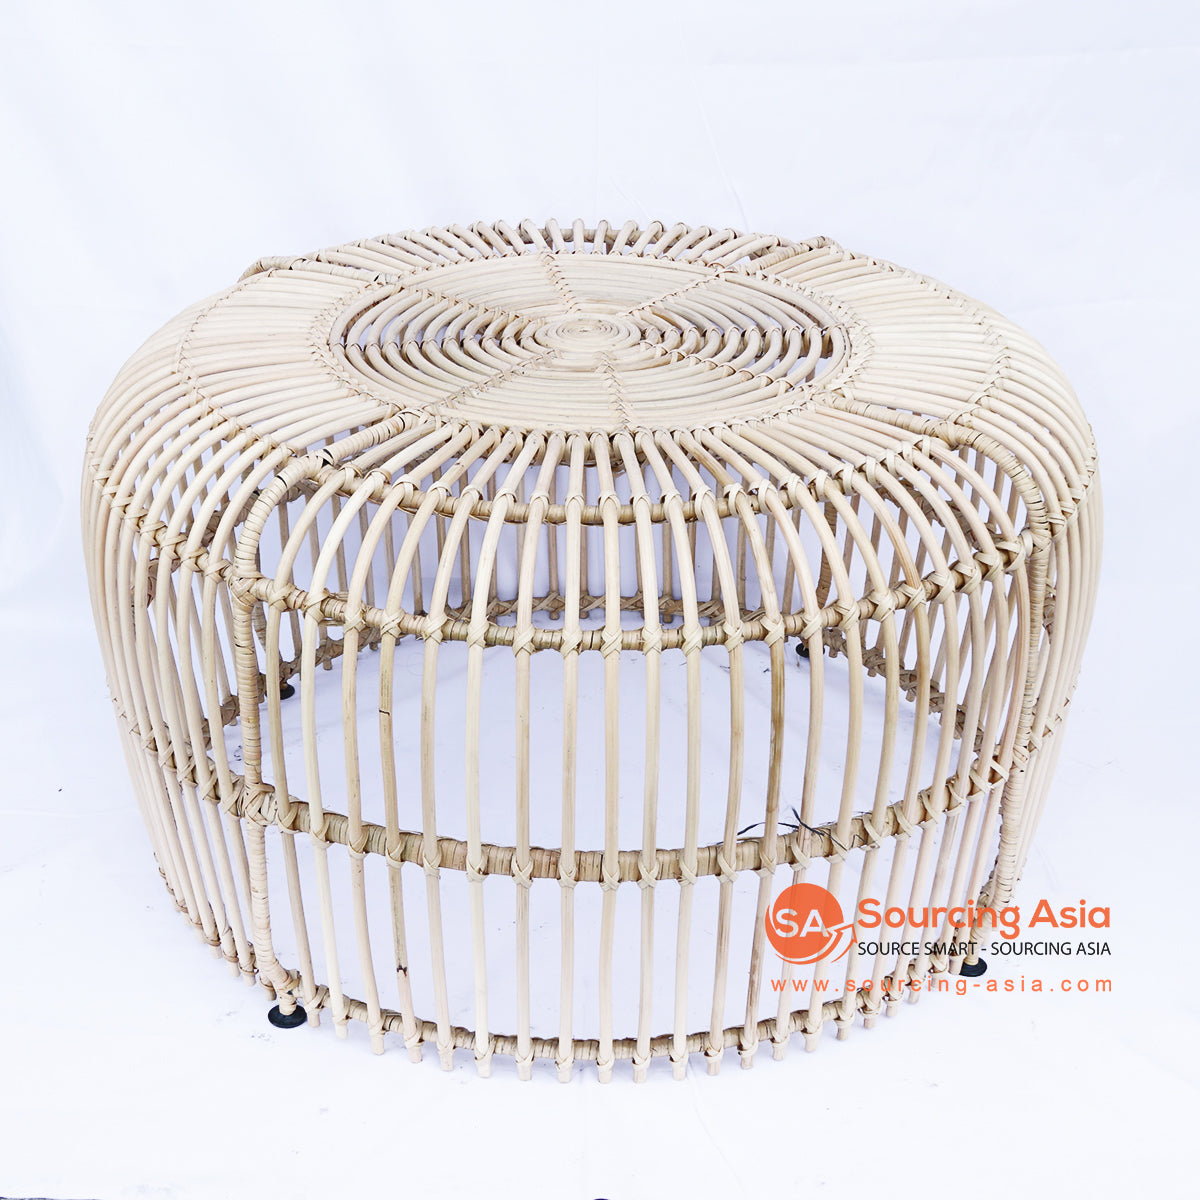 BNTC005-4 RATTAN SIDE TABLE